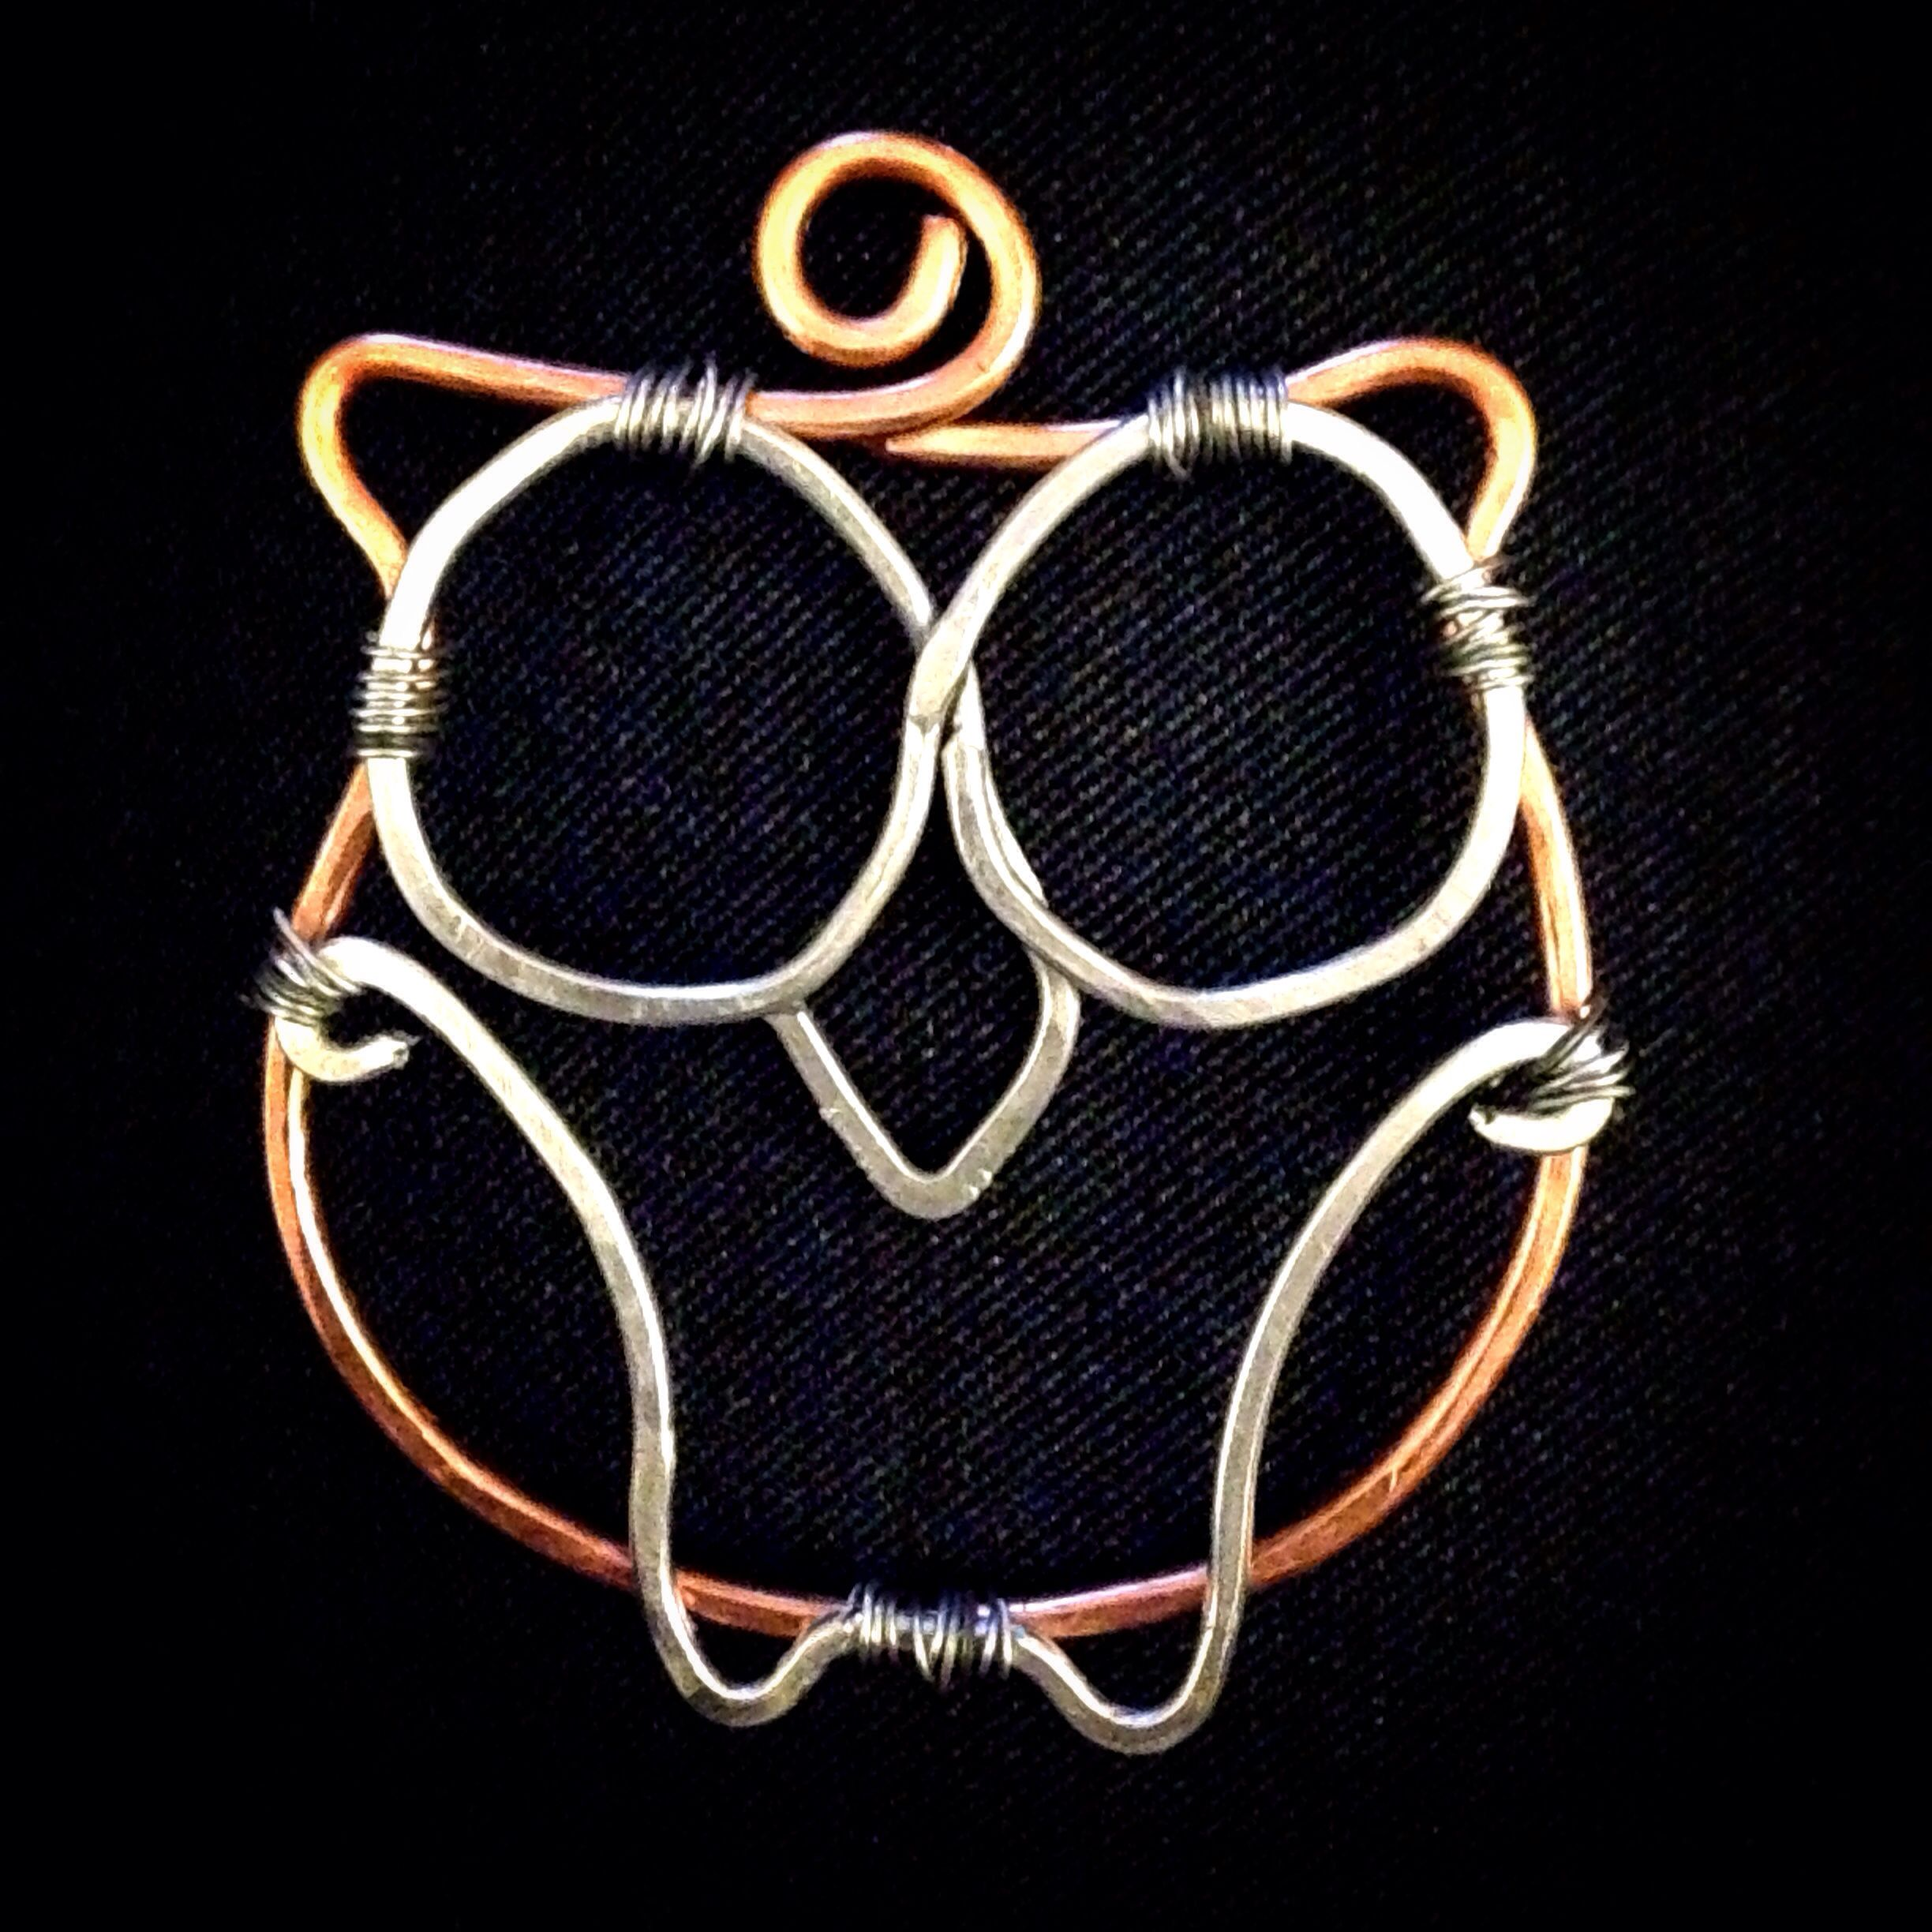 Owl wire pendant in copper and aluminum | My creations | Pinterest ...